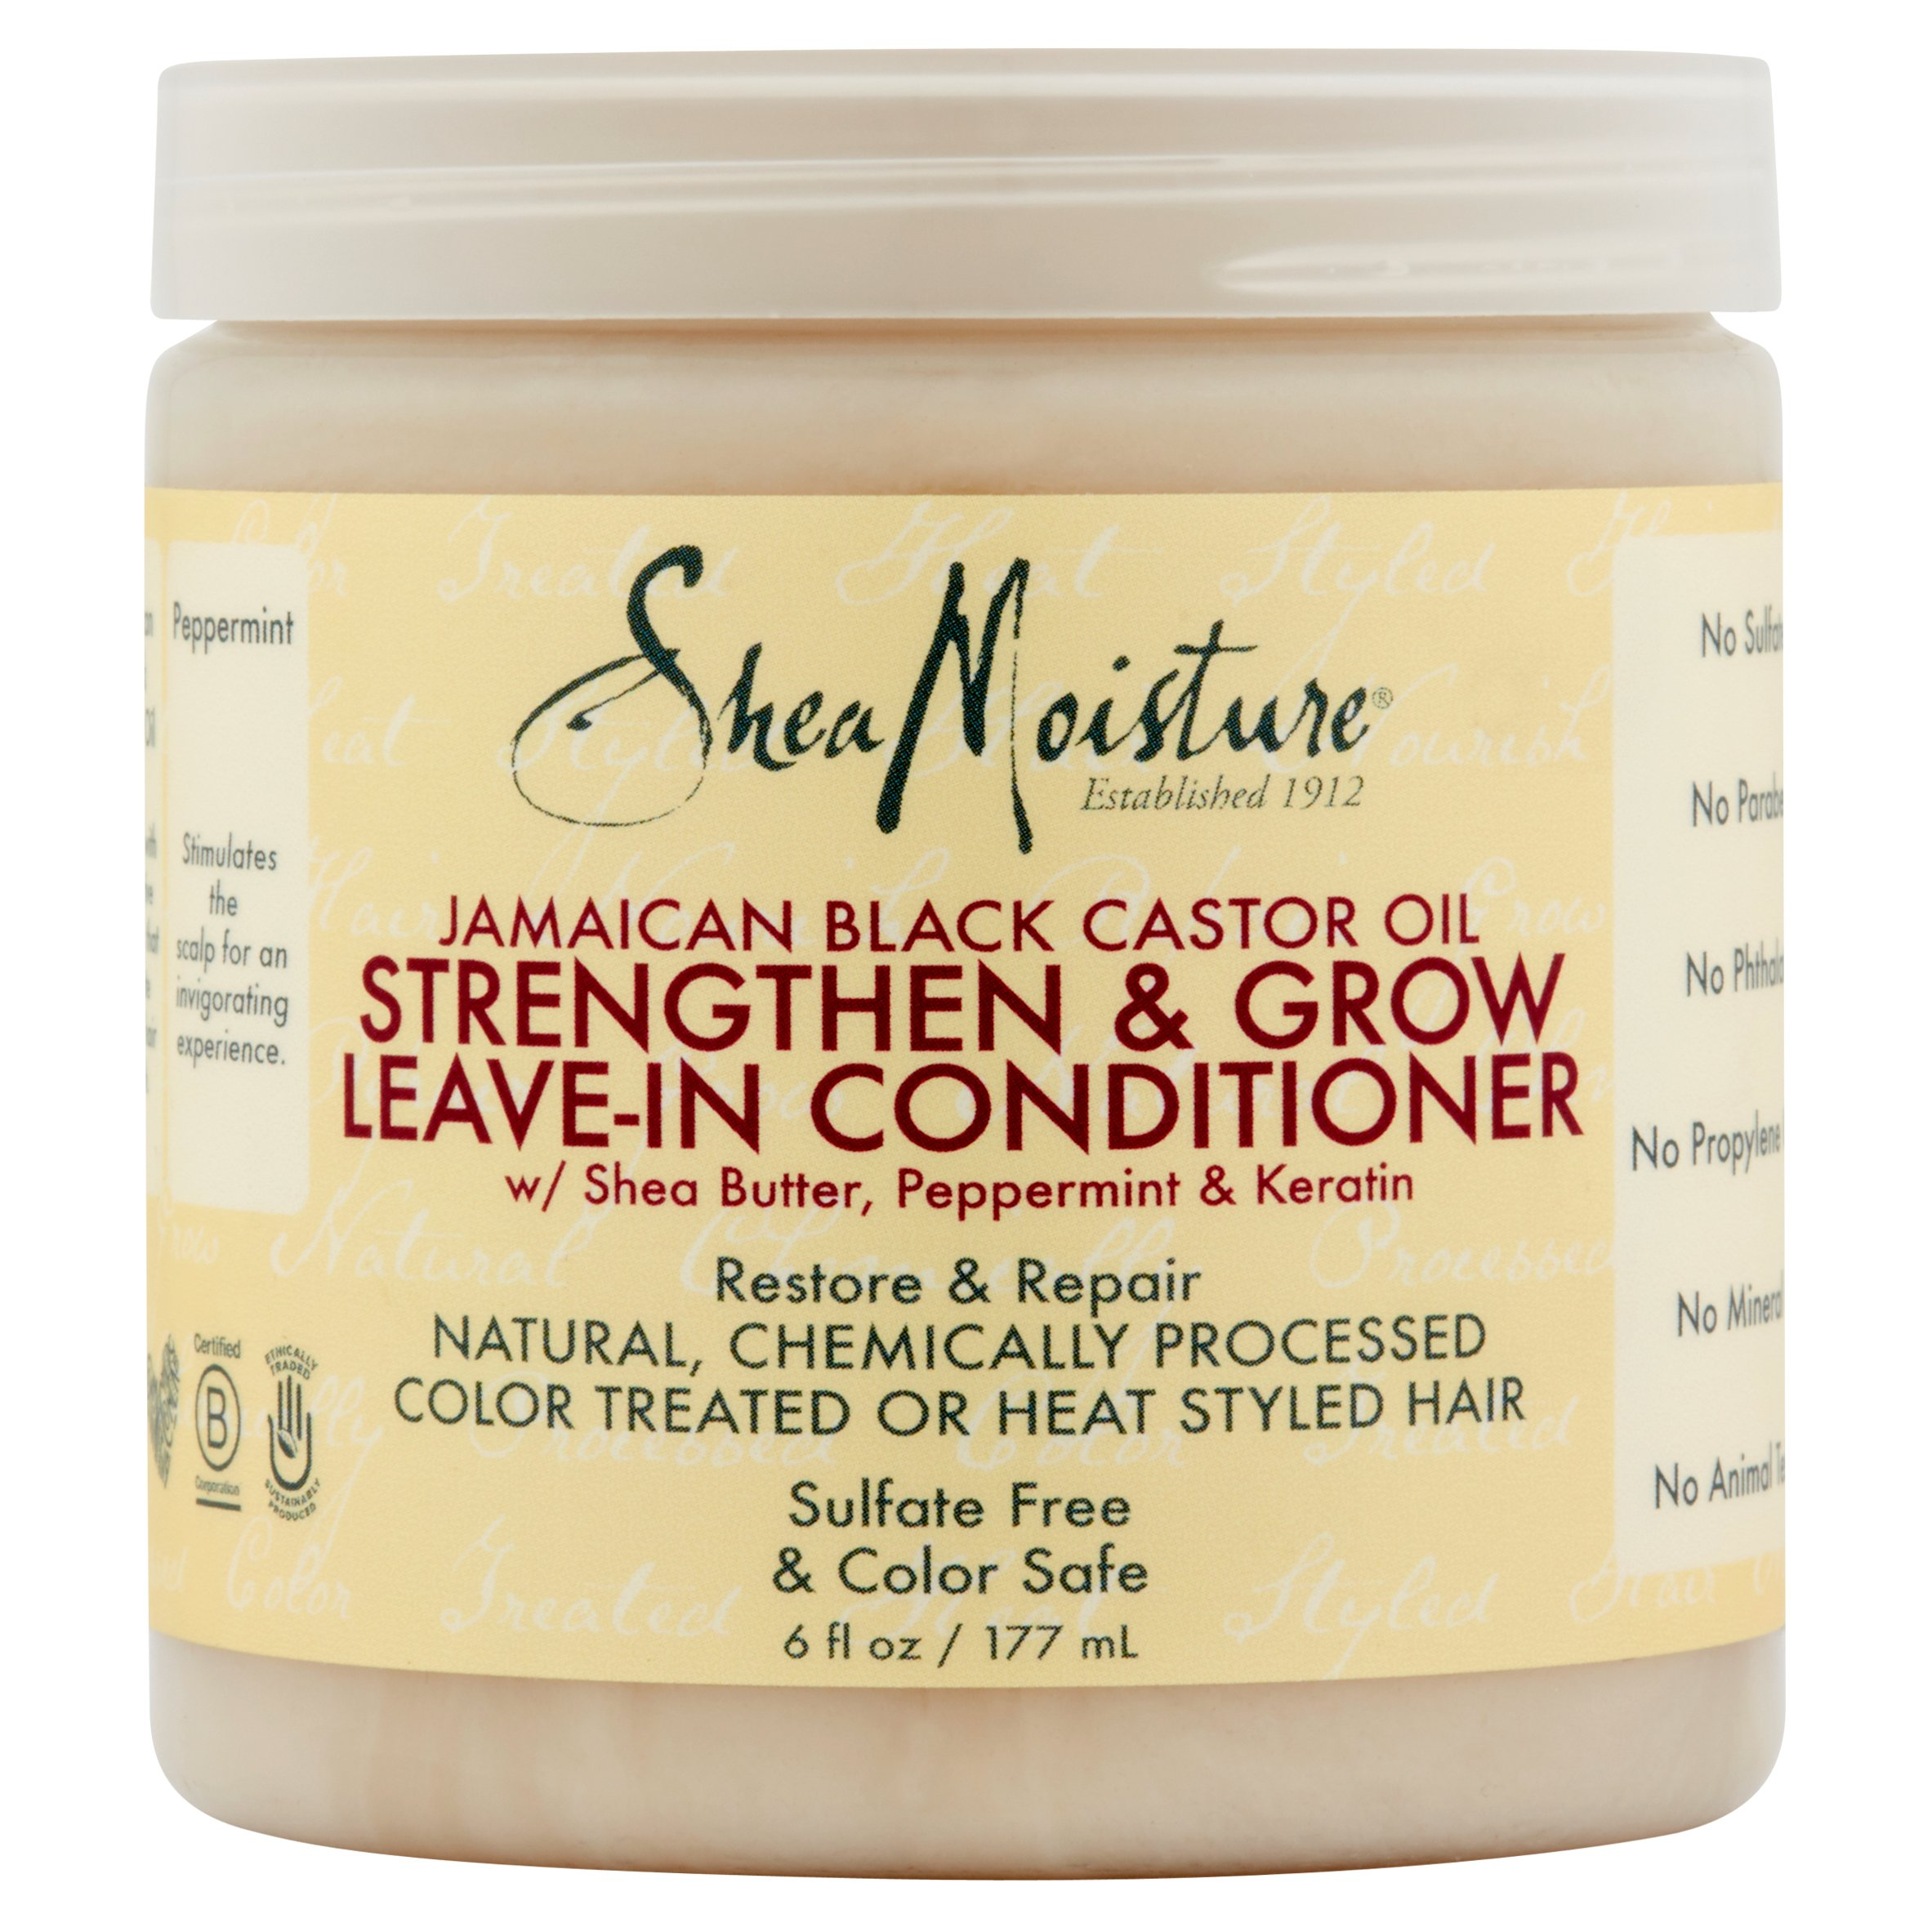 Shea Moisture Jamaican Black Castor Oil Strengthen & Grow Leave-In Conditioner, 6 fl oz